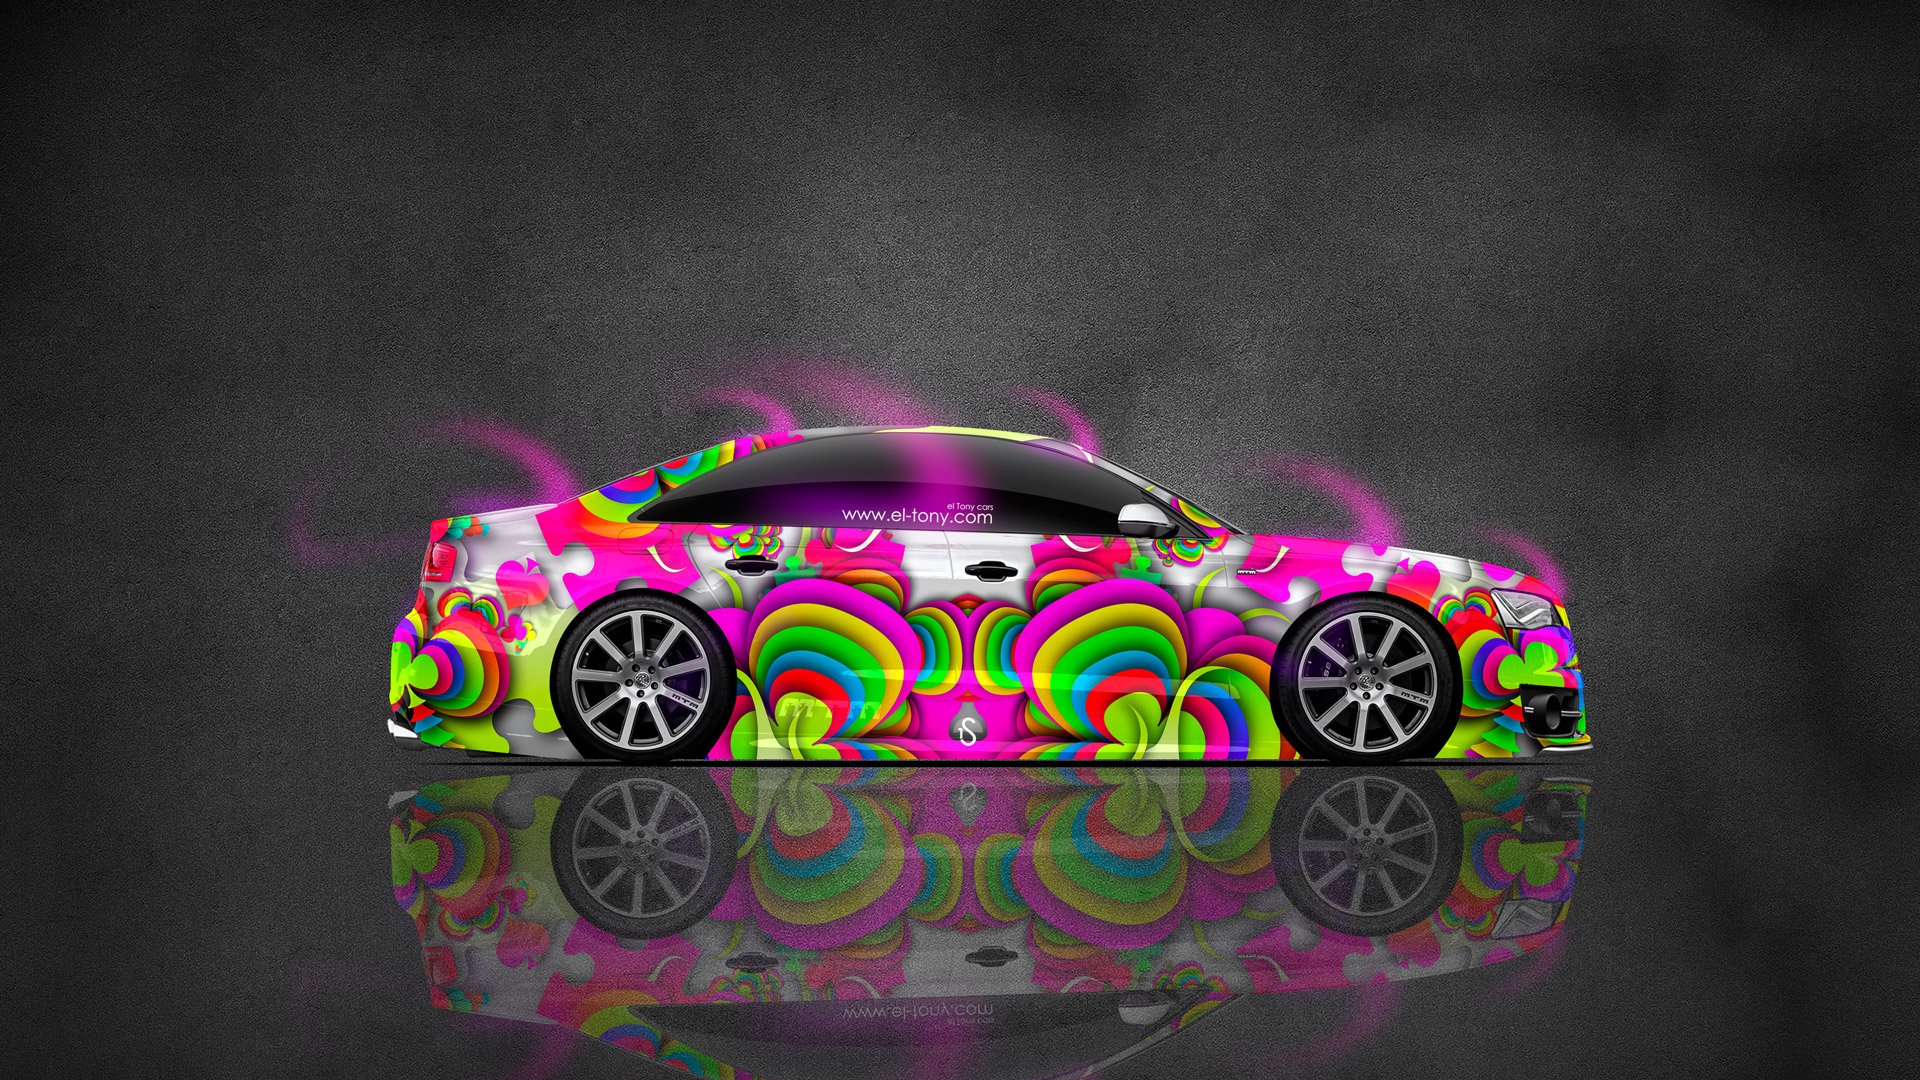 Charmant ... Audi S8 Biturbo Tuning MTM Side Abstract Aerography Car 2015